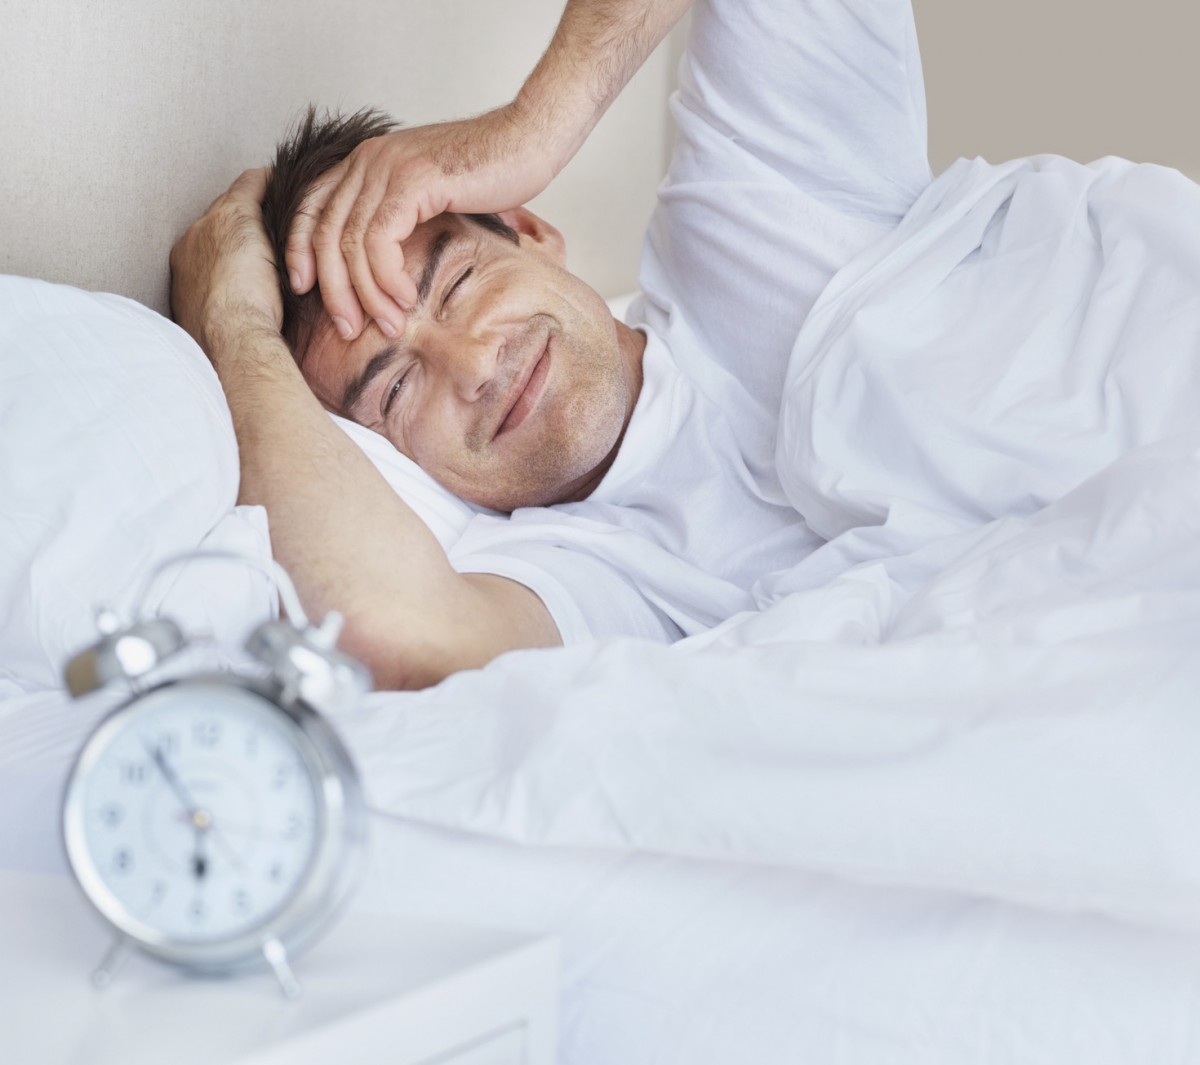 Handsome middle aged man in bed irritated by the ring of the alarm clock